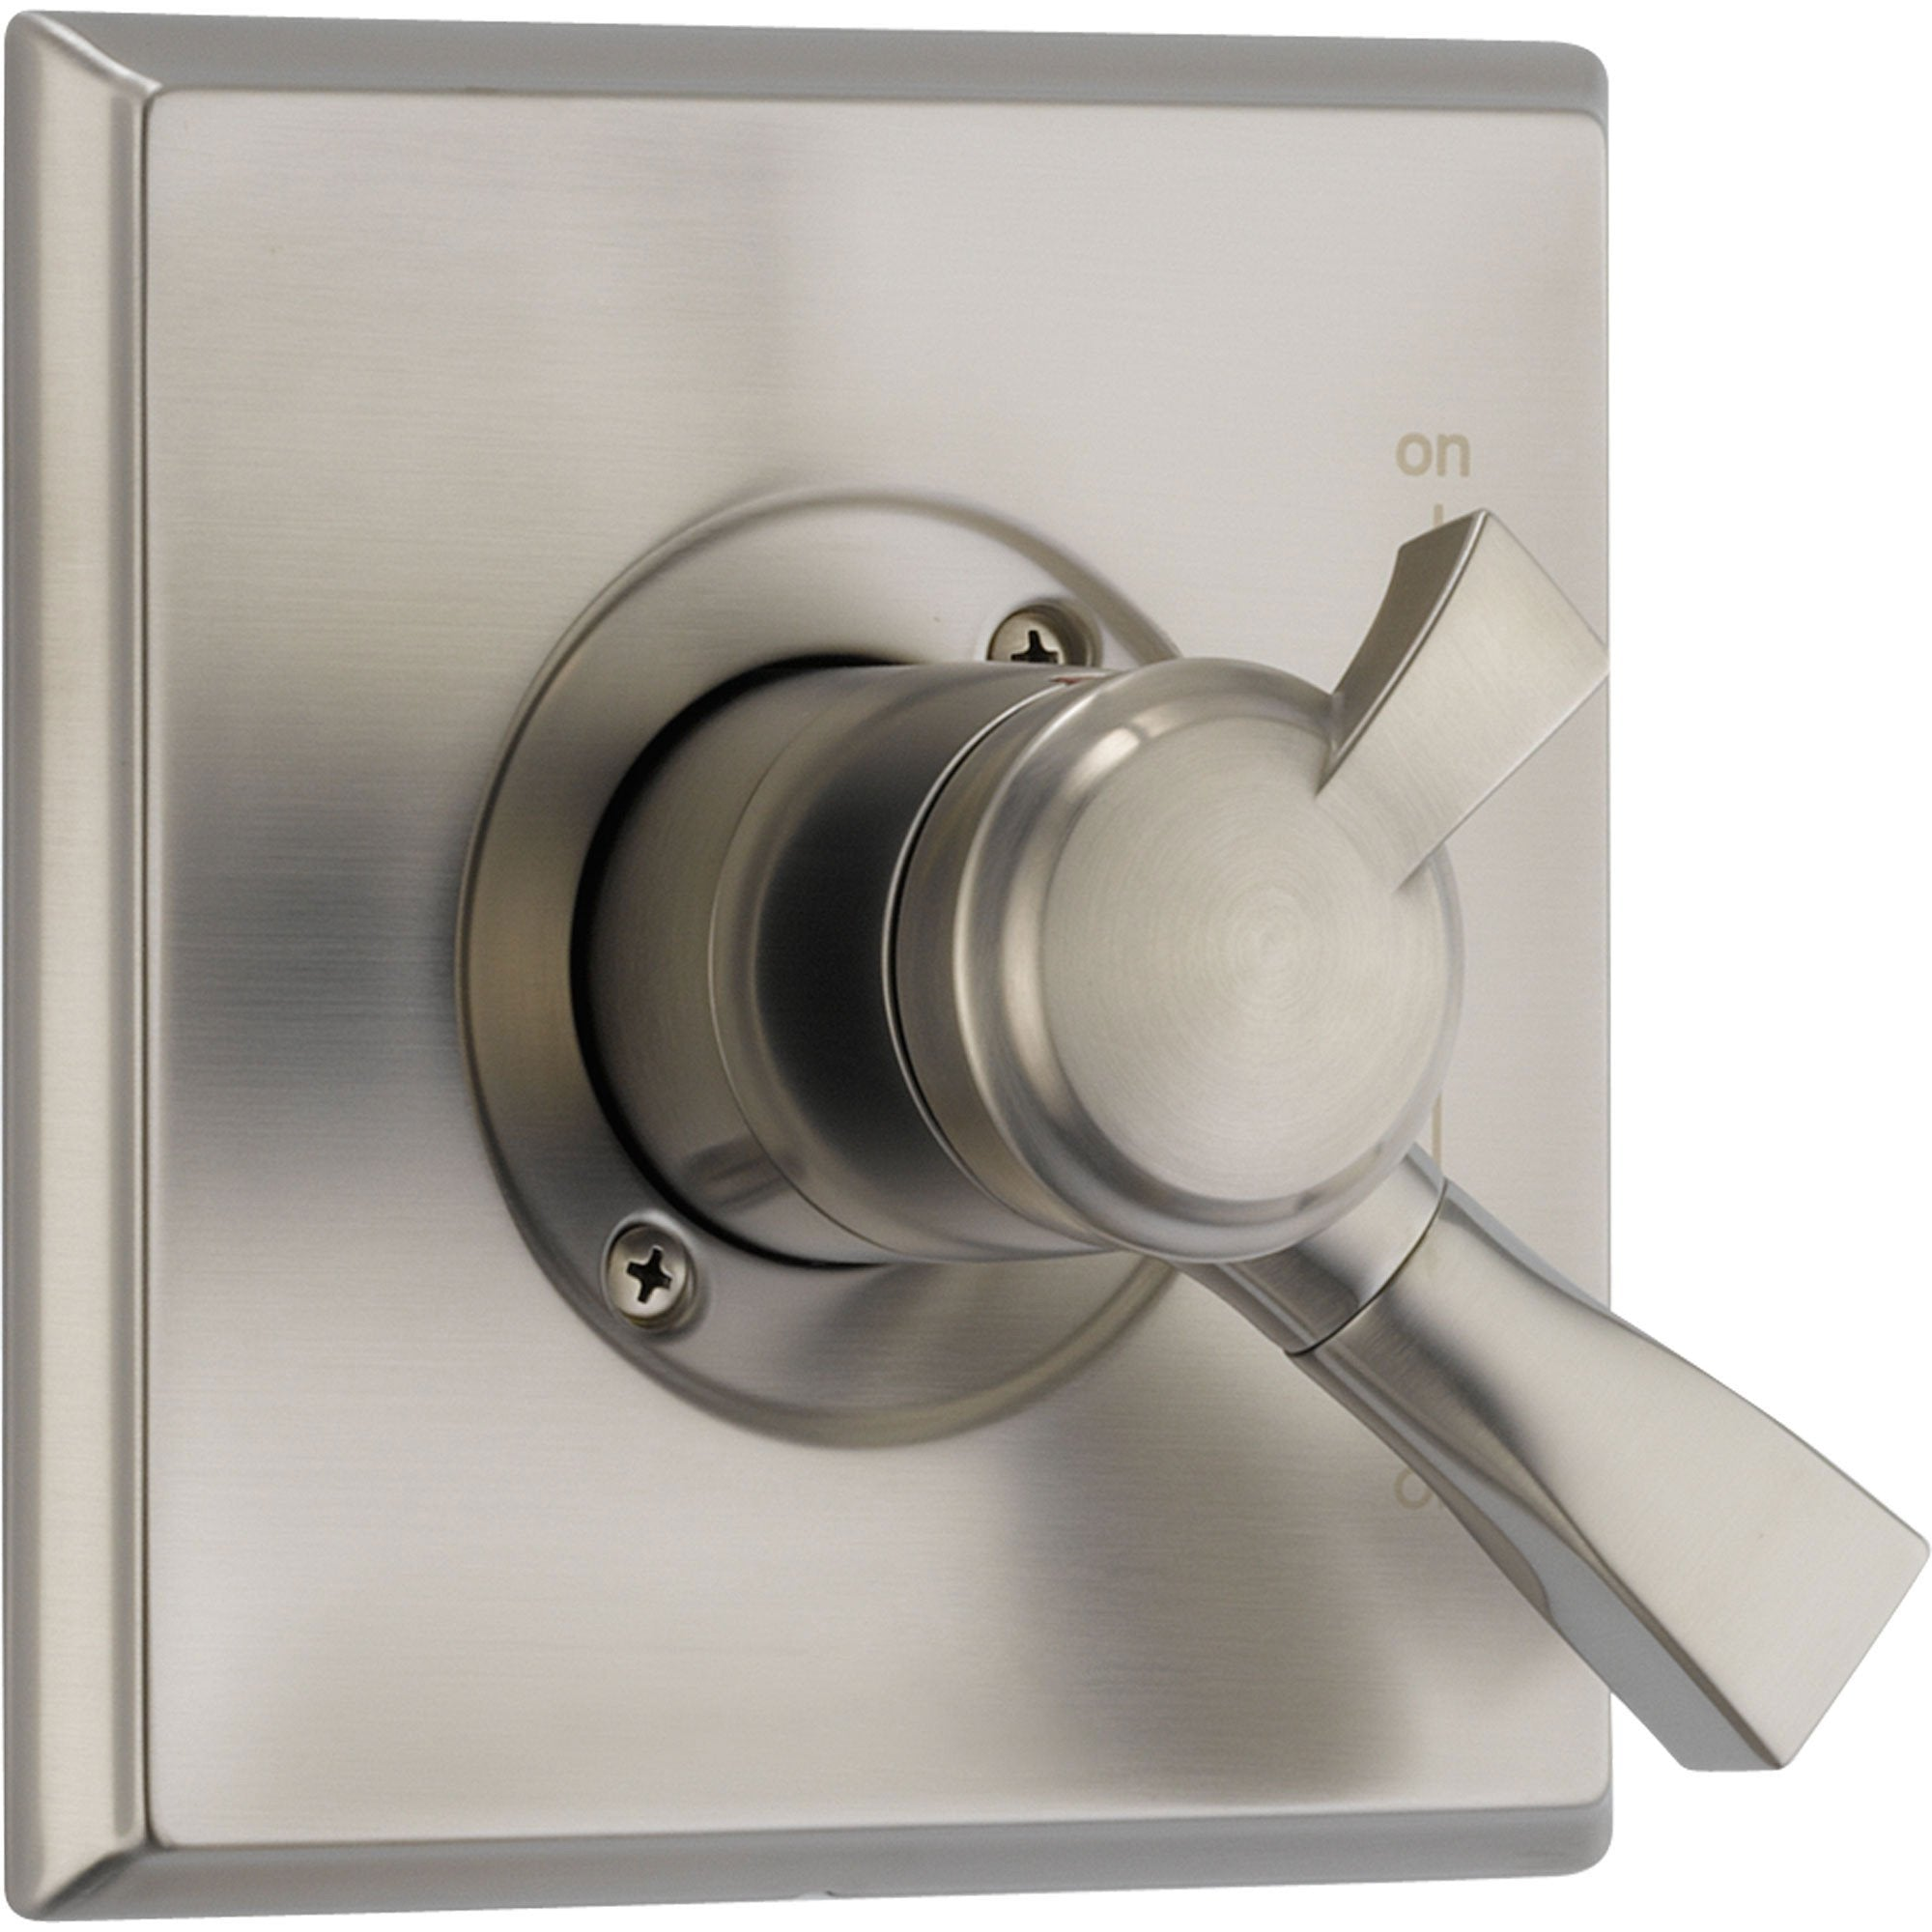 Delta Temperature and Volume Control Stainless Steel Finish Shower w/Valve D119V